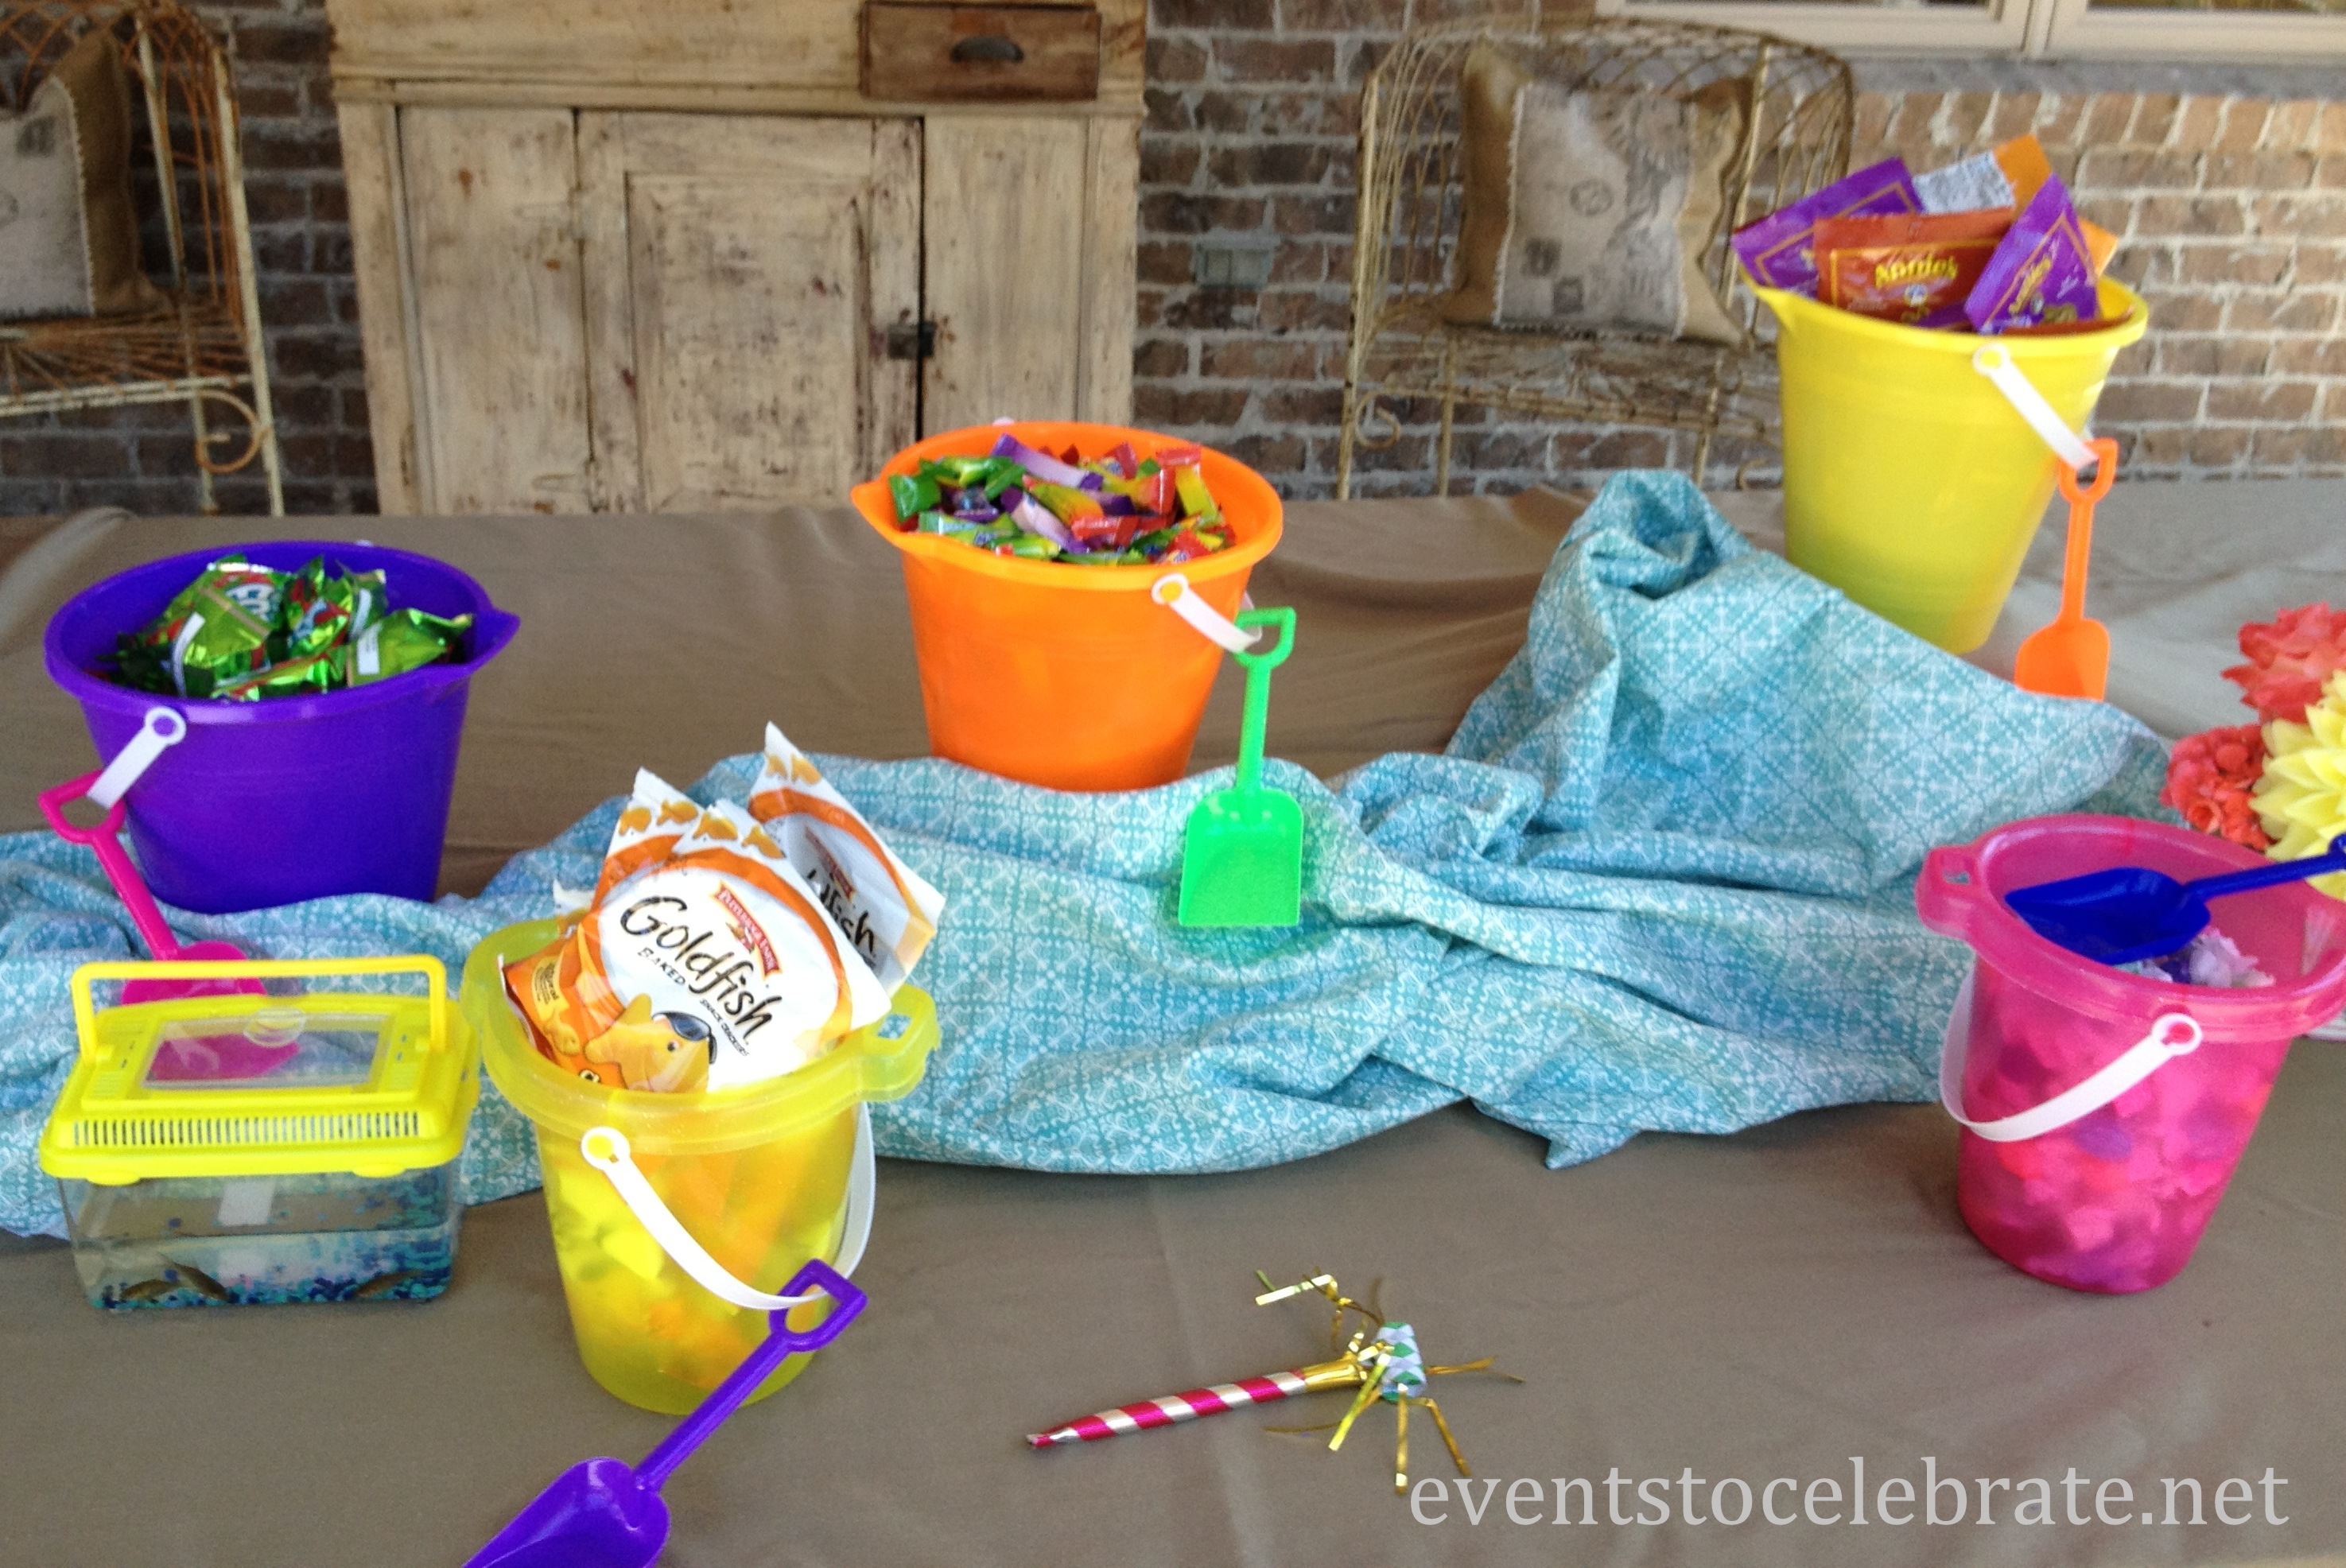 Swim Party Decorations - treats in sand buckets & swim party Archives - events to CELEBRATE!